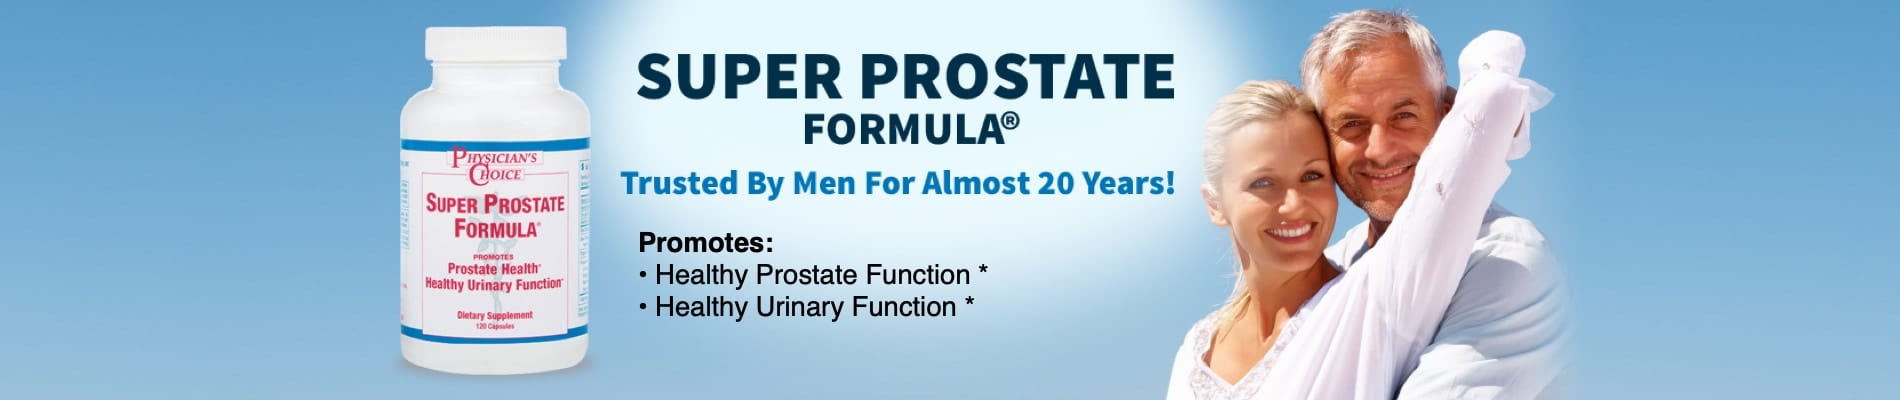 Super Prostate Formula promotes healthy prostate and urinary function